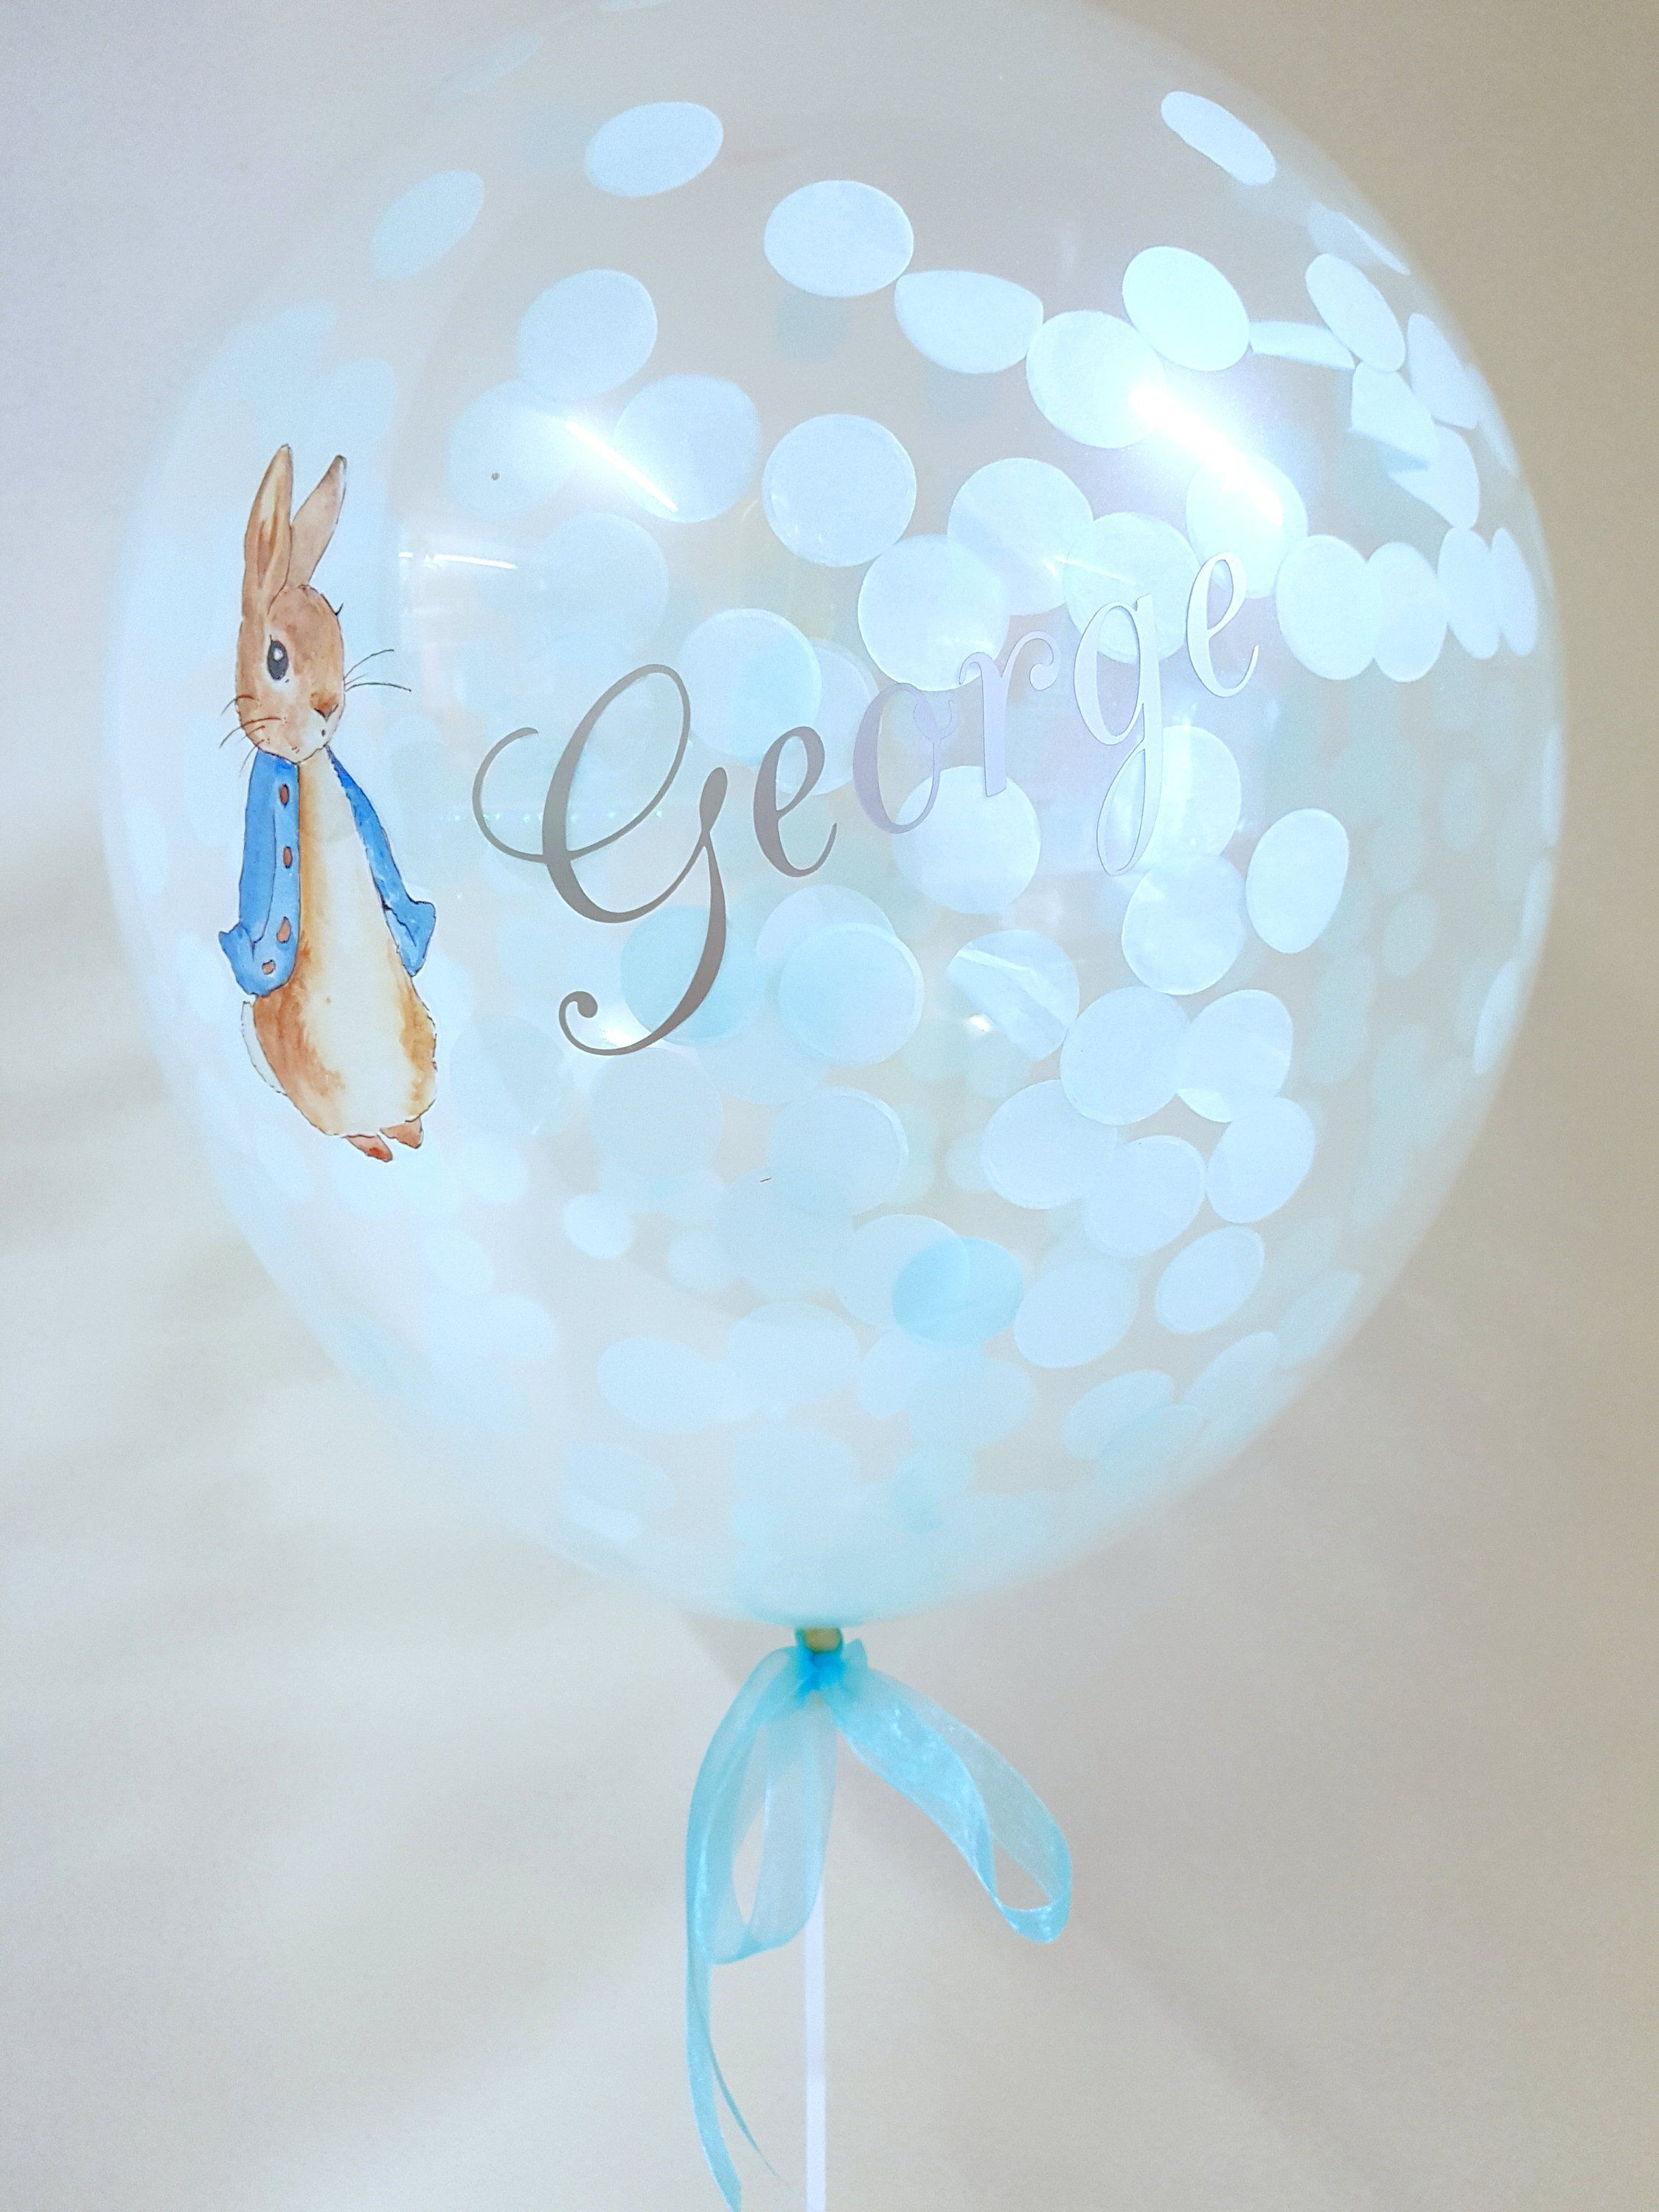 Rabbit Balloon, Confetti Balloon, Birthday Balloon, Christening Balloon, Baby Shower Balloon, Personalised Balloon #personalisedballoons Rabbit Balloon, Confetti Balloon, Birthday Balloon, Christening Balloon, Baby Shower Balloon, Personalised Balloon. by TheBalloonShopStore on Etsy #personalisedballoons Rabbit Balloon, Confetti Balloon, Birthday Balloon, Christening Balloon, Baby Shower Balloon, Personalised Balloon #personalisedballoons Rabbit Balloon, Confetti Balloon, Birthday Balloon, Chris #personalisedballoons